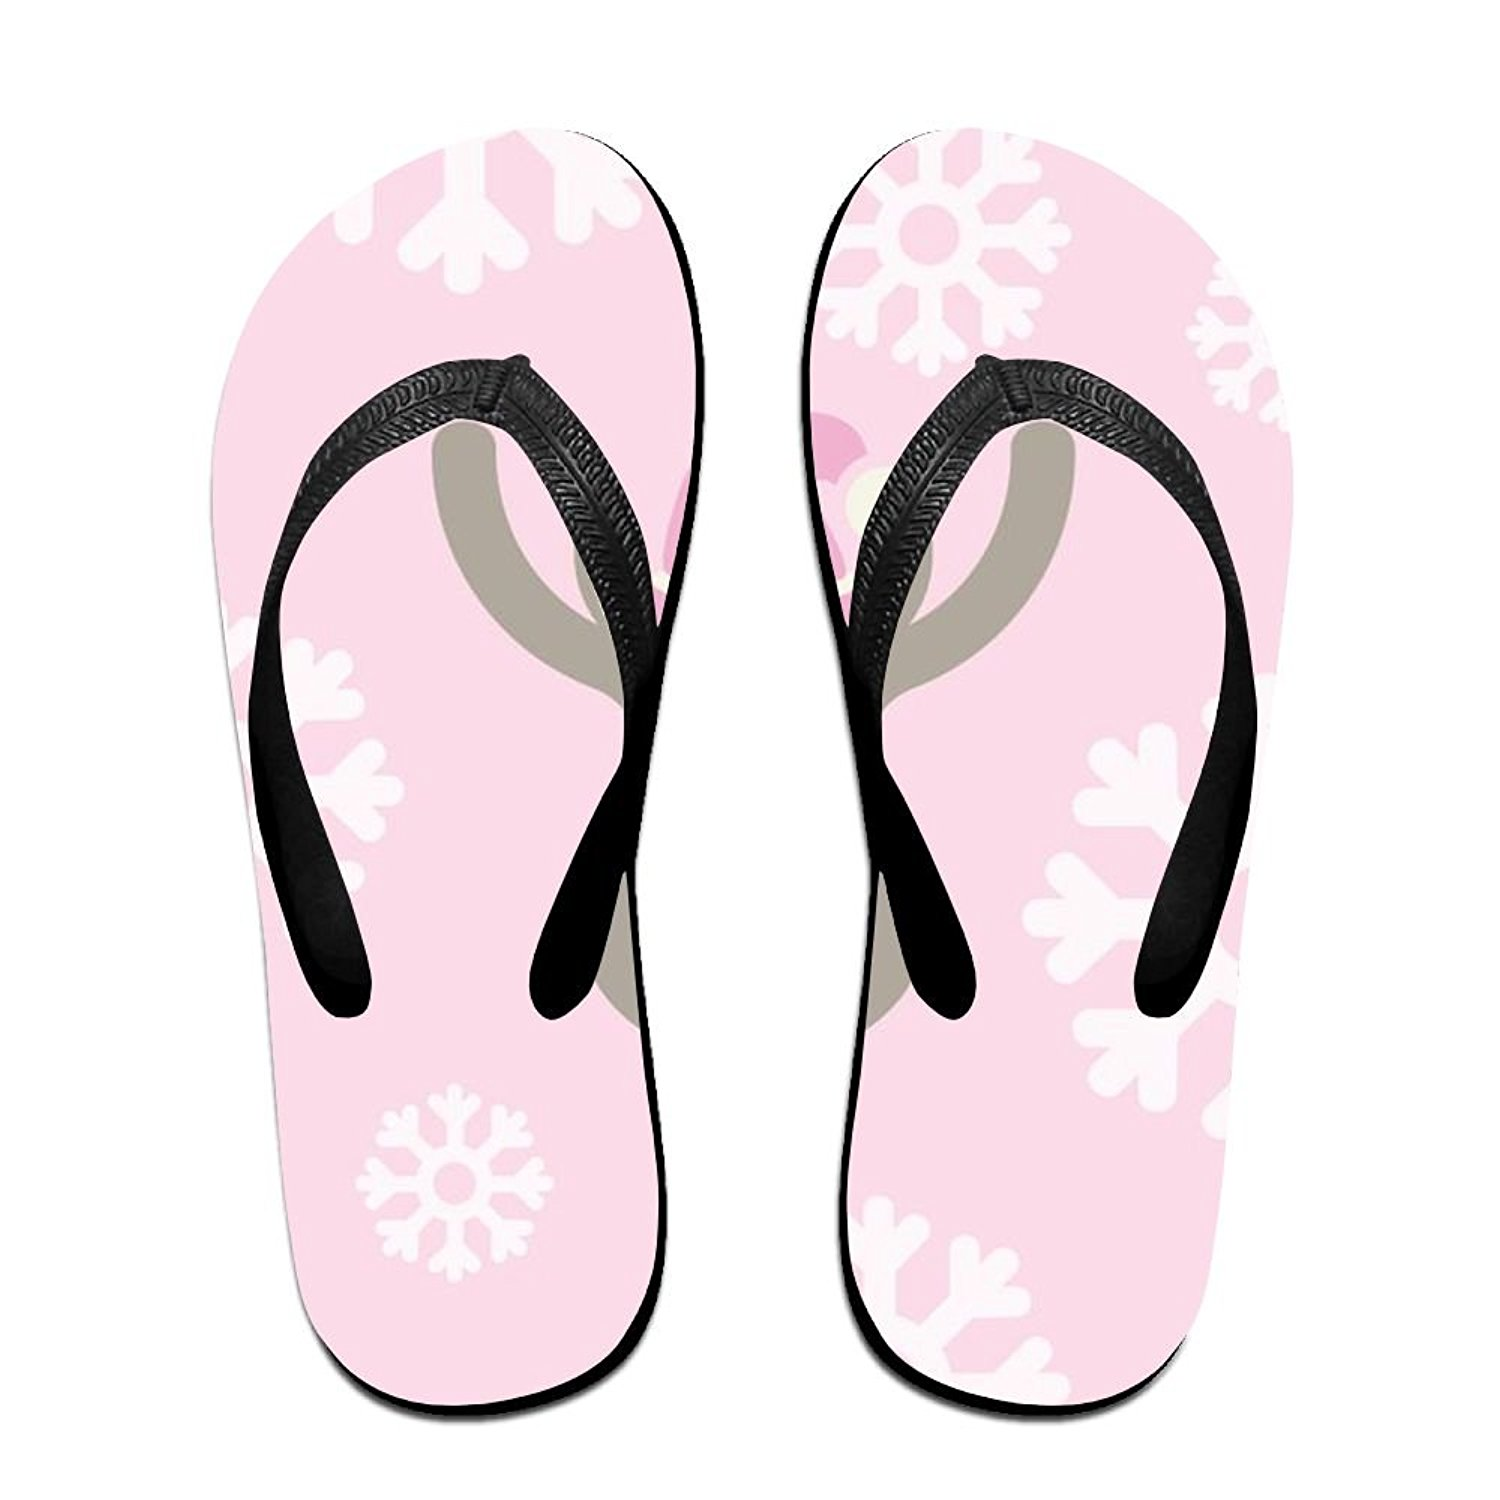 Couple Flip Flops Merry Christmas Puppy Print Chic Sandals Slipper Rubber Non-Slip House Thong Slippers